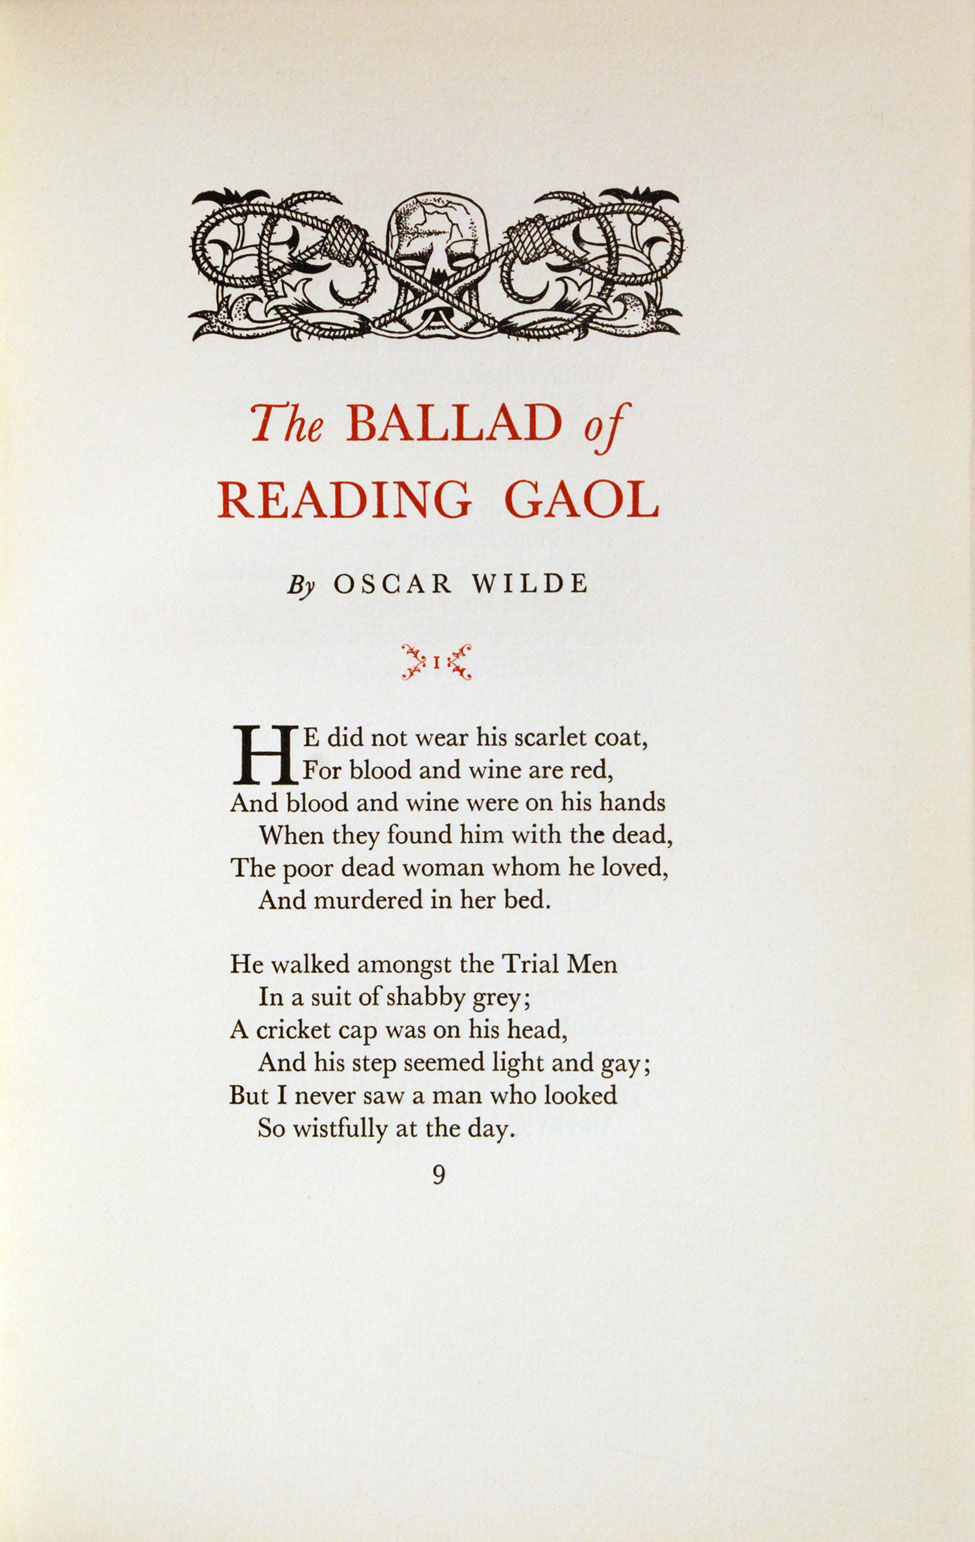 Oscar Wilde. The Ballad of Reading Gaol. <i>Christchurch: The Caxton Press, 1958.</i>